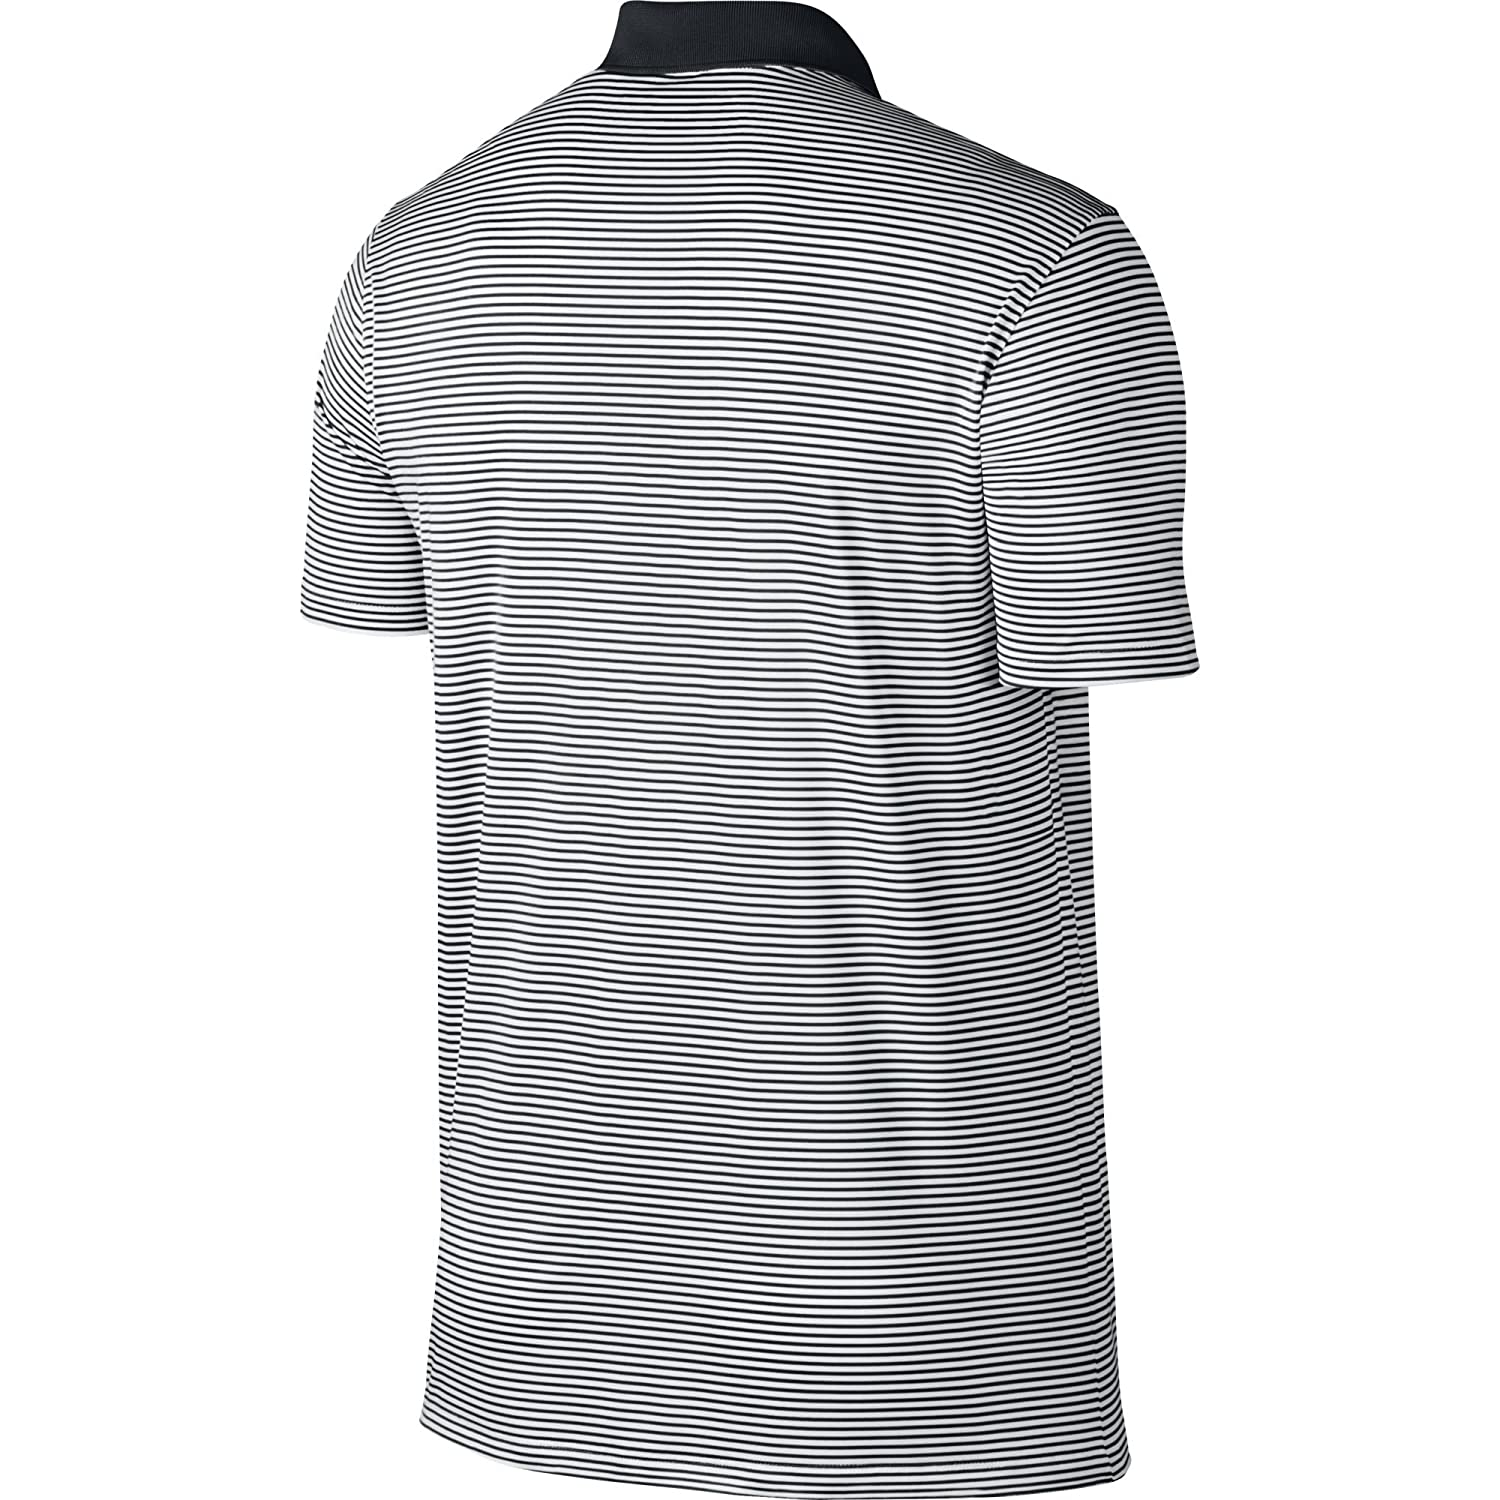 1d15908e4 Nike Men's Dry Victory Stripe Polo, Black/White, X-Large: Amazon.in:  Sports, Fitness & Outdoors